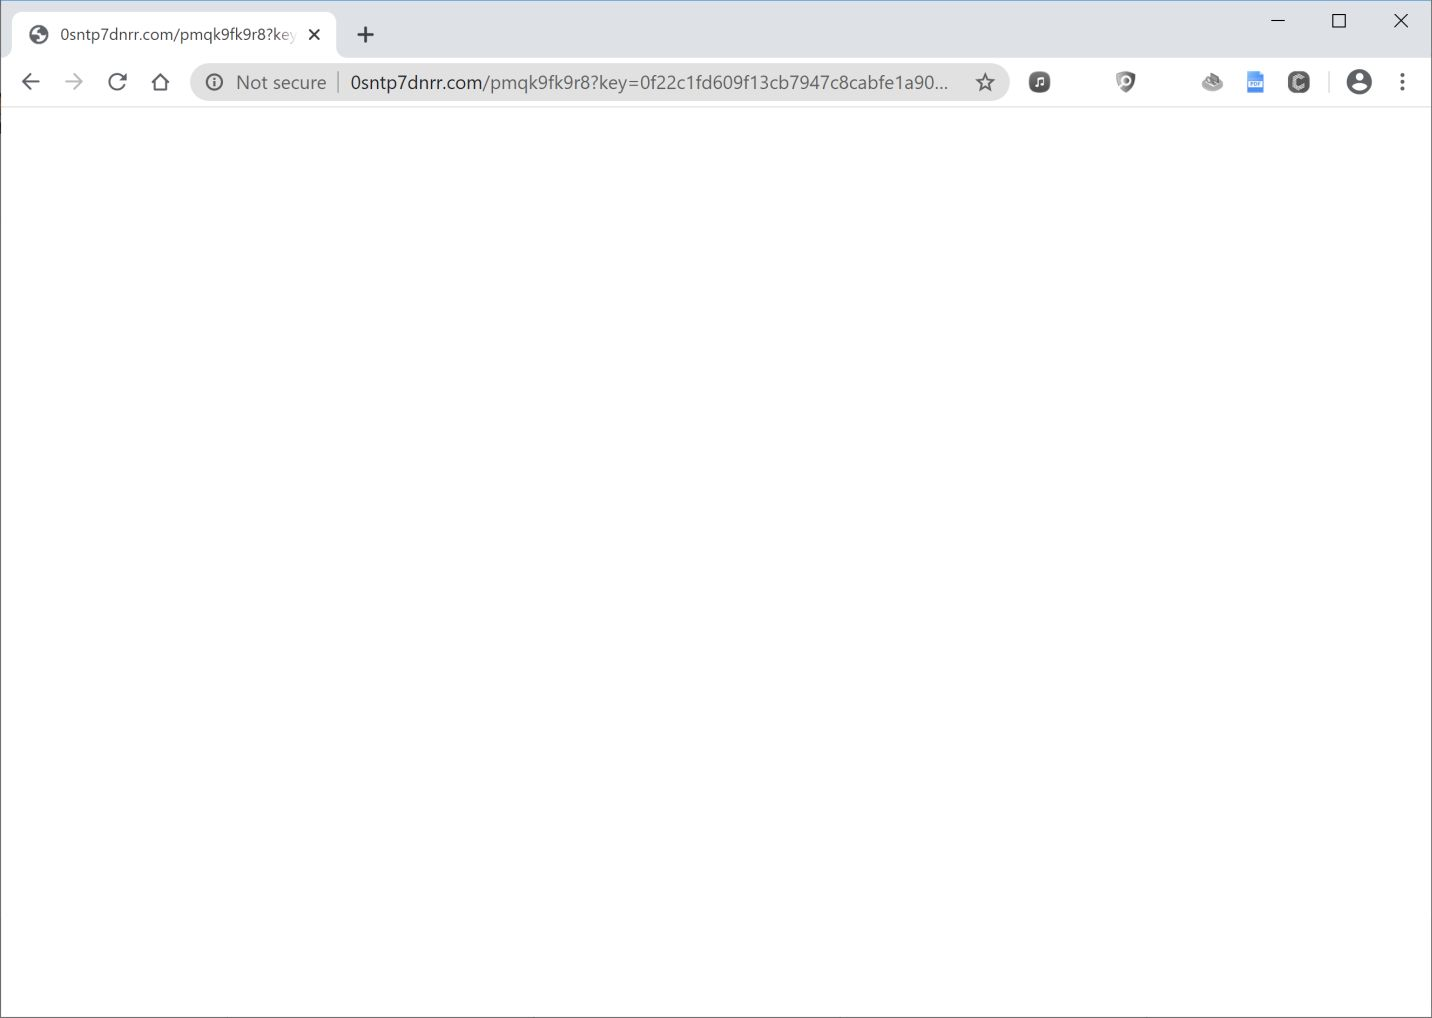 Image: Chrome browser is redirected to 0sntp7dnrr.com